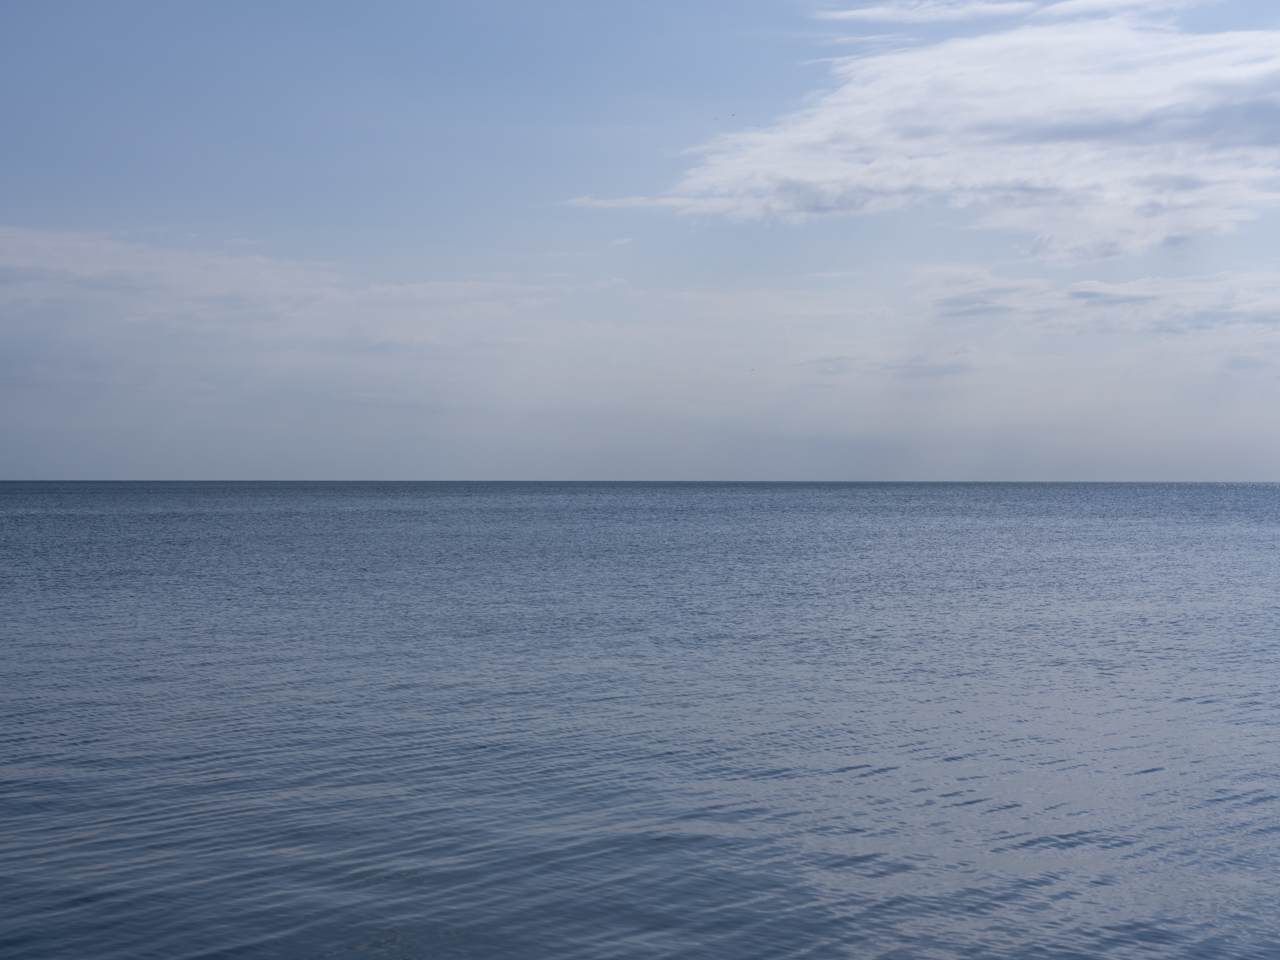 it almost appears like there is smoke on the horizon on a hazy blue day on Lake Michigan, clouds are thin and layered in the sky